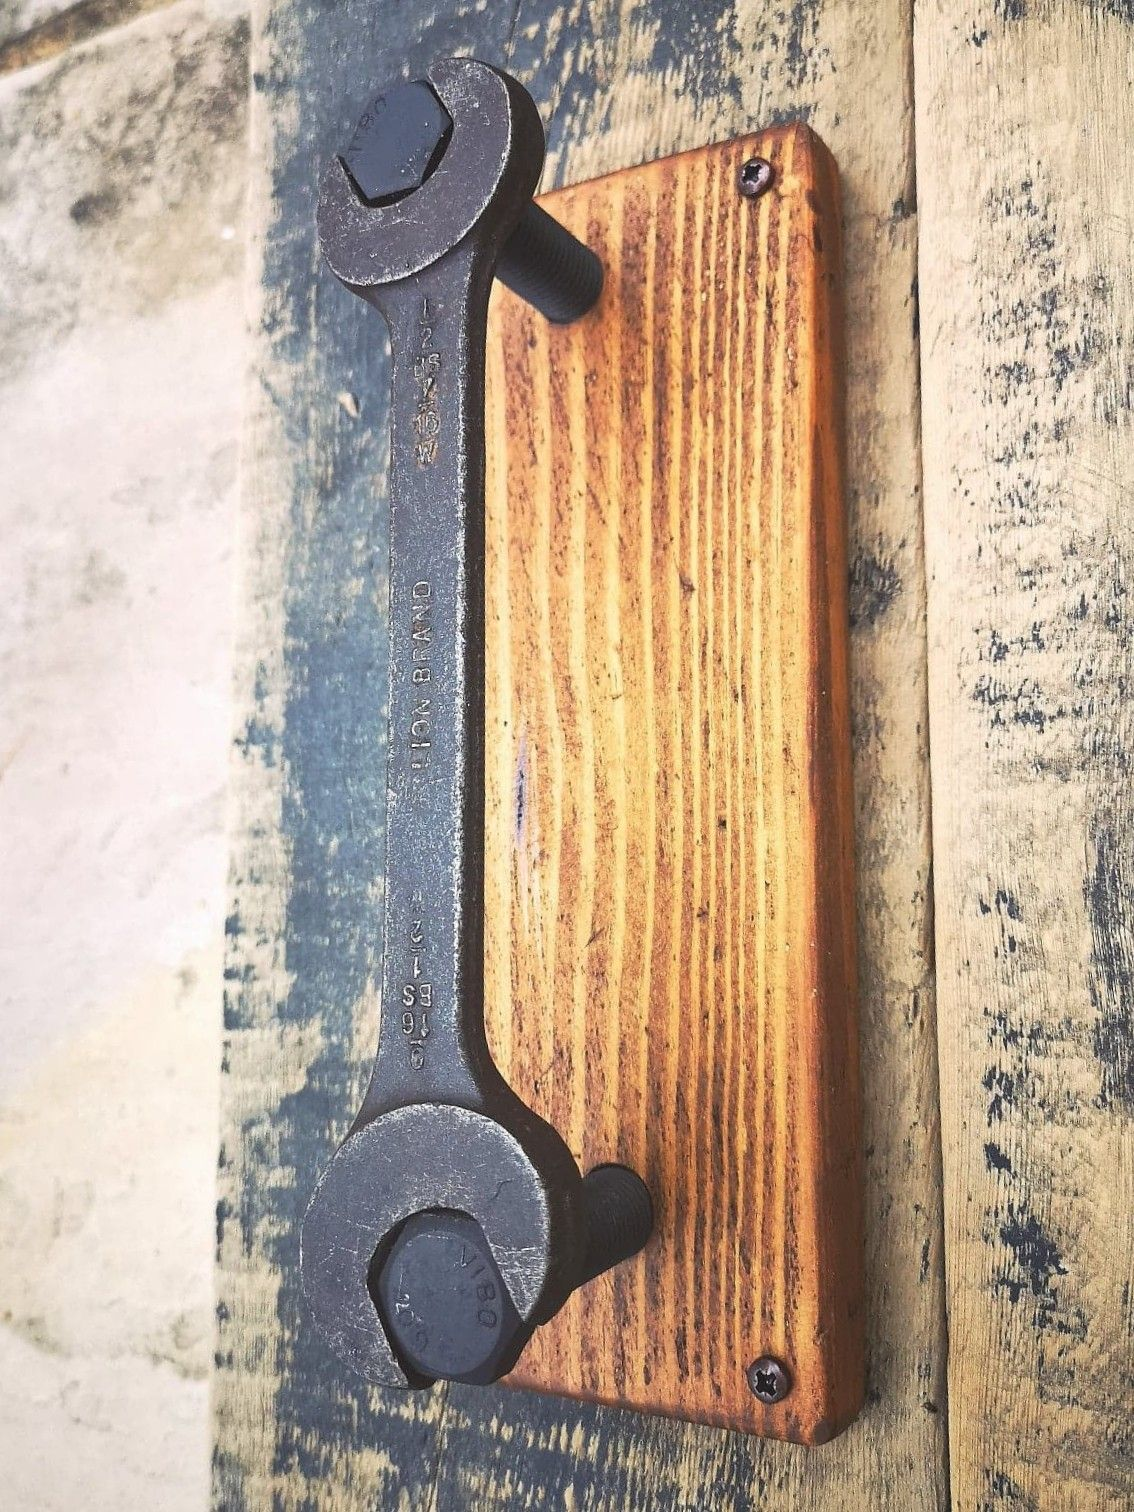 Made From A Vintage Wrench Bolts And Barn Wood This Cool Door Handle Woud Be Ideal In A Man Cave Or Industrial Style A In 2020 Welding Projects Cool Doors Metal Art